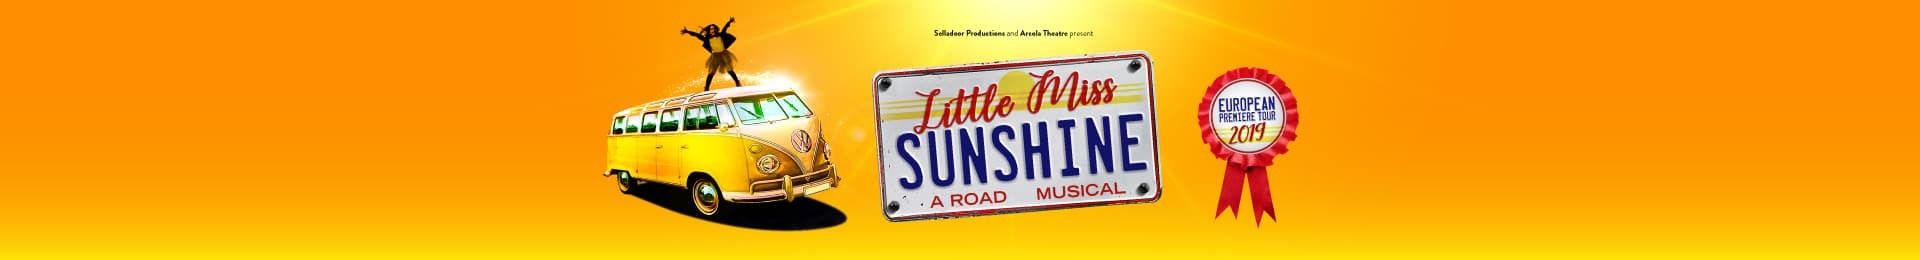 Little Miss Sunshine banner image